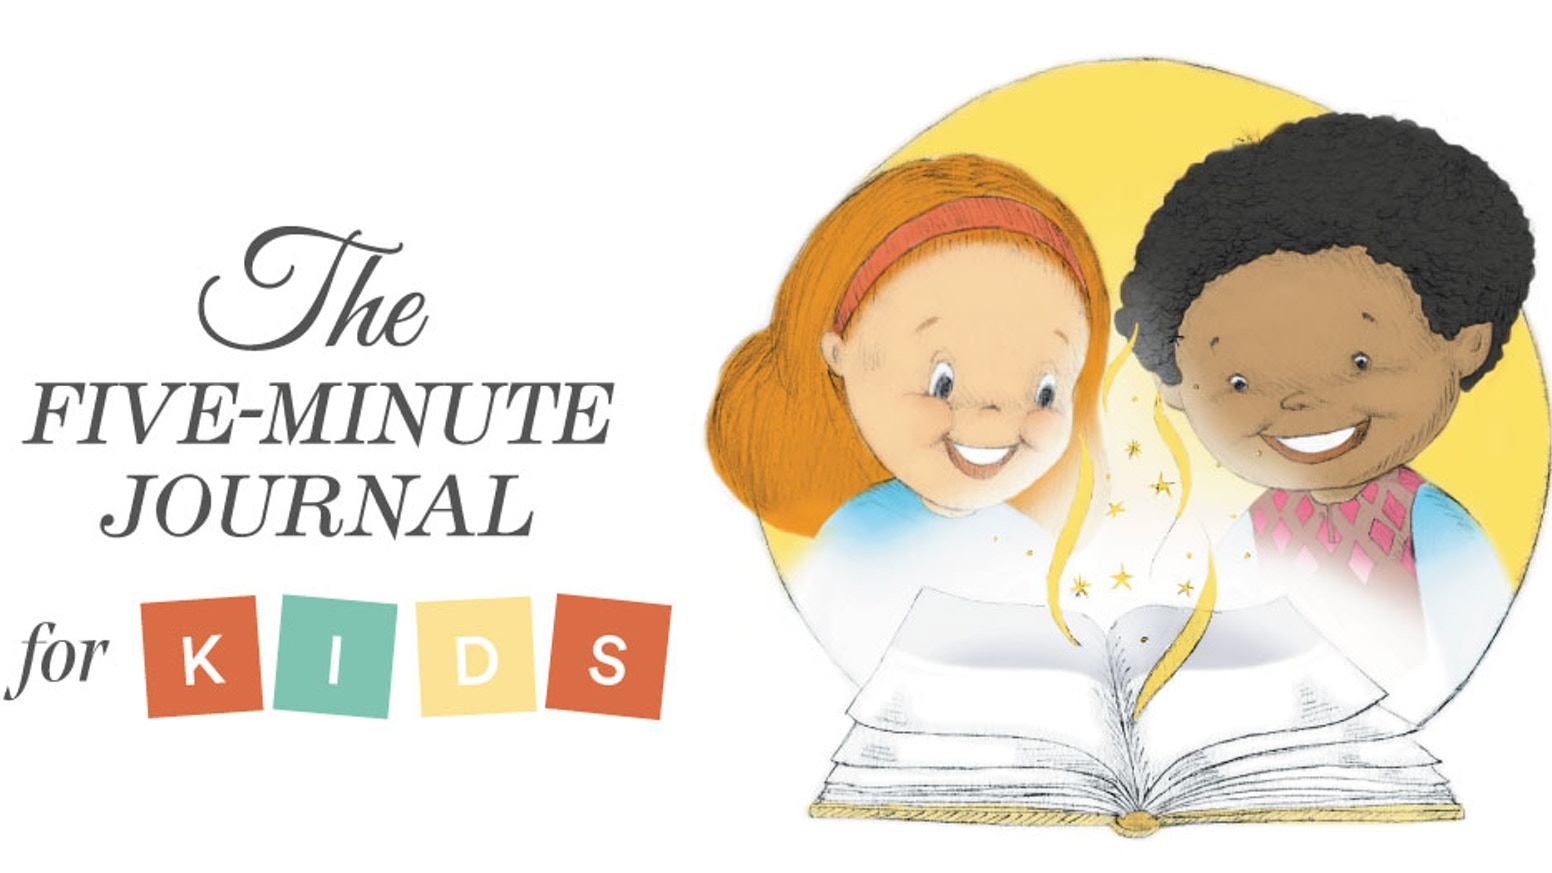 A guided children's journal that helps instill gratitude, boost confidence, and increase mindfulness, in just 5 minutes a day.